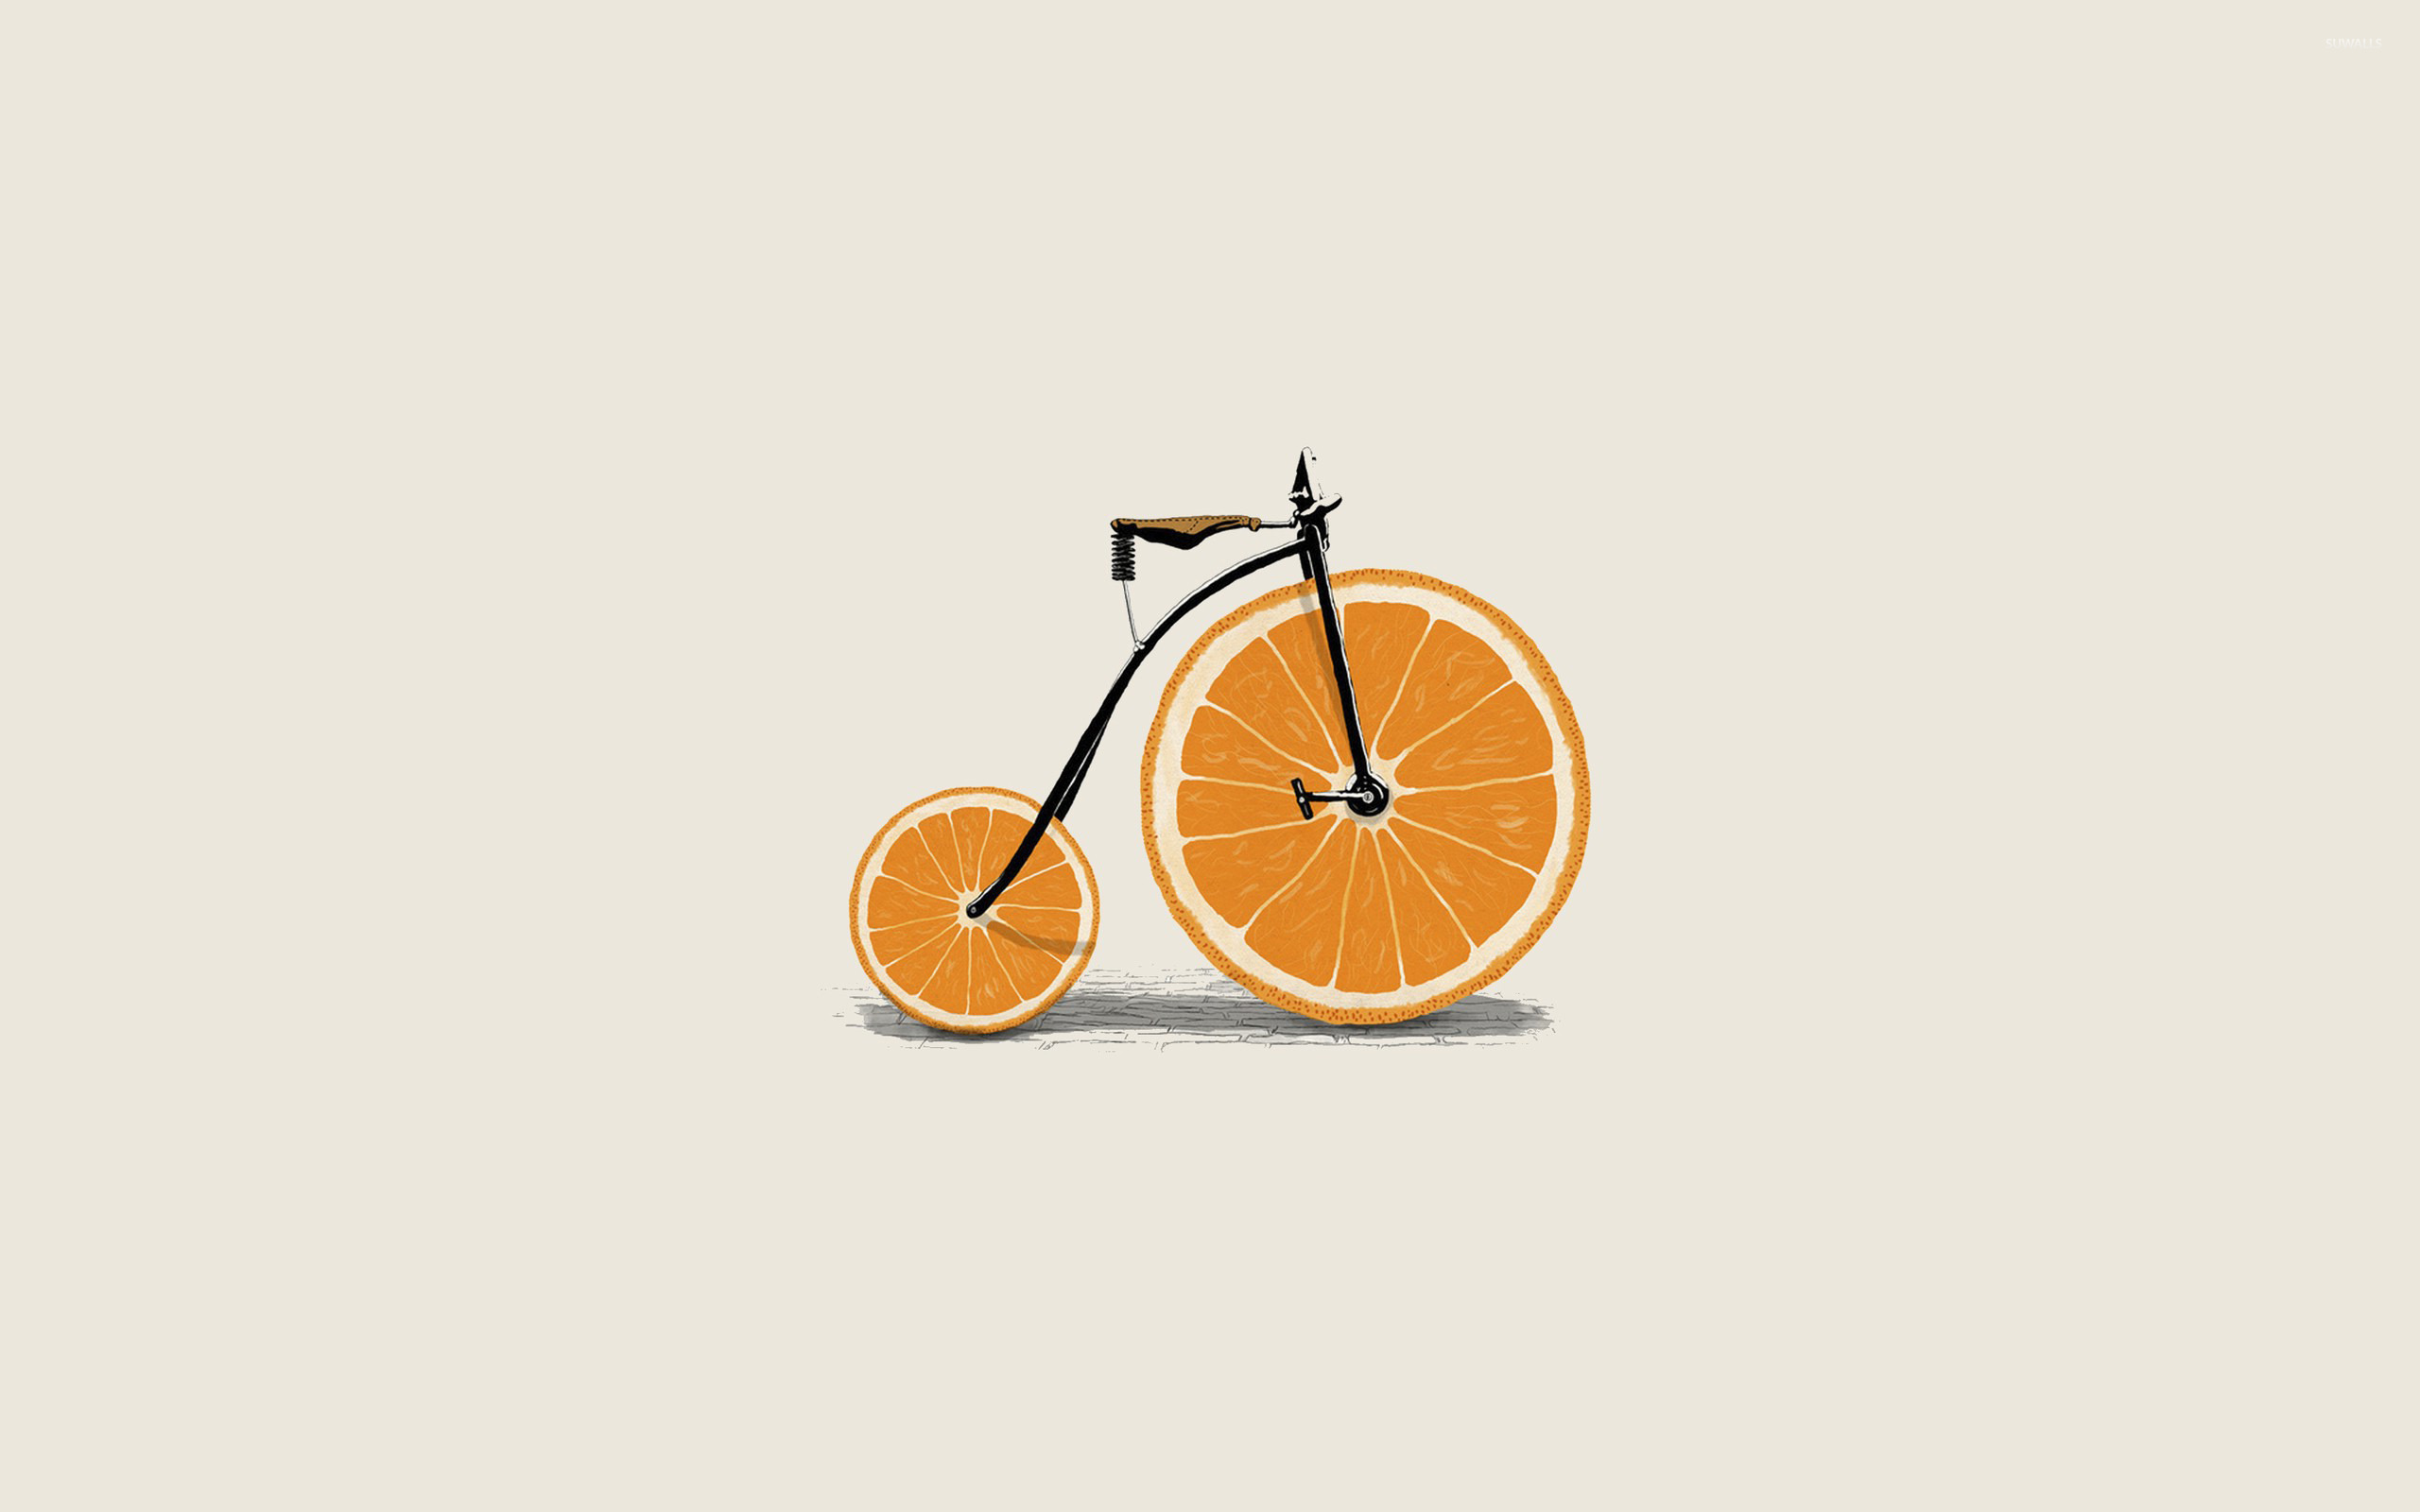 Orange wheel bicycle wallpaper Digital Art wallpapers 17903